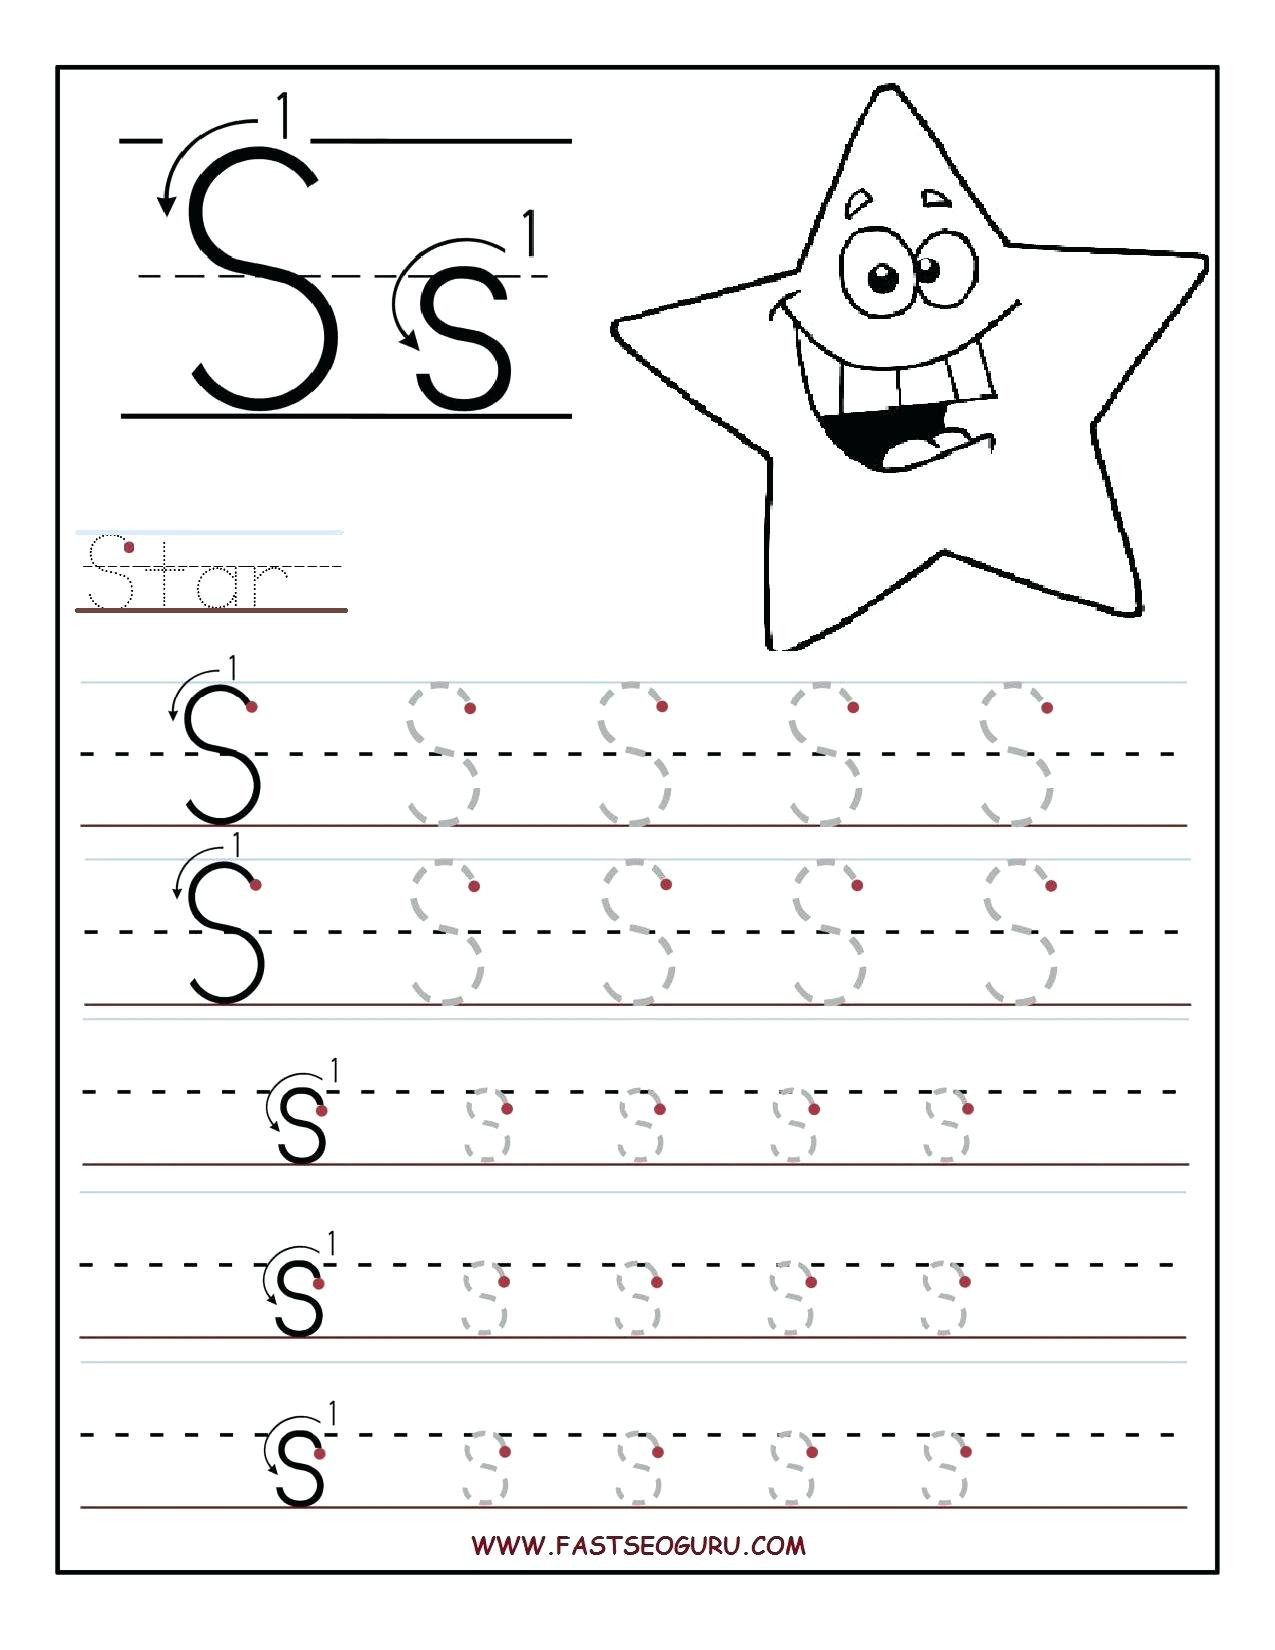 Tracing Worksheets For 3 Year Olds